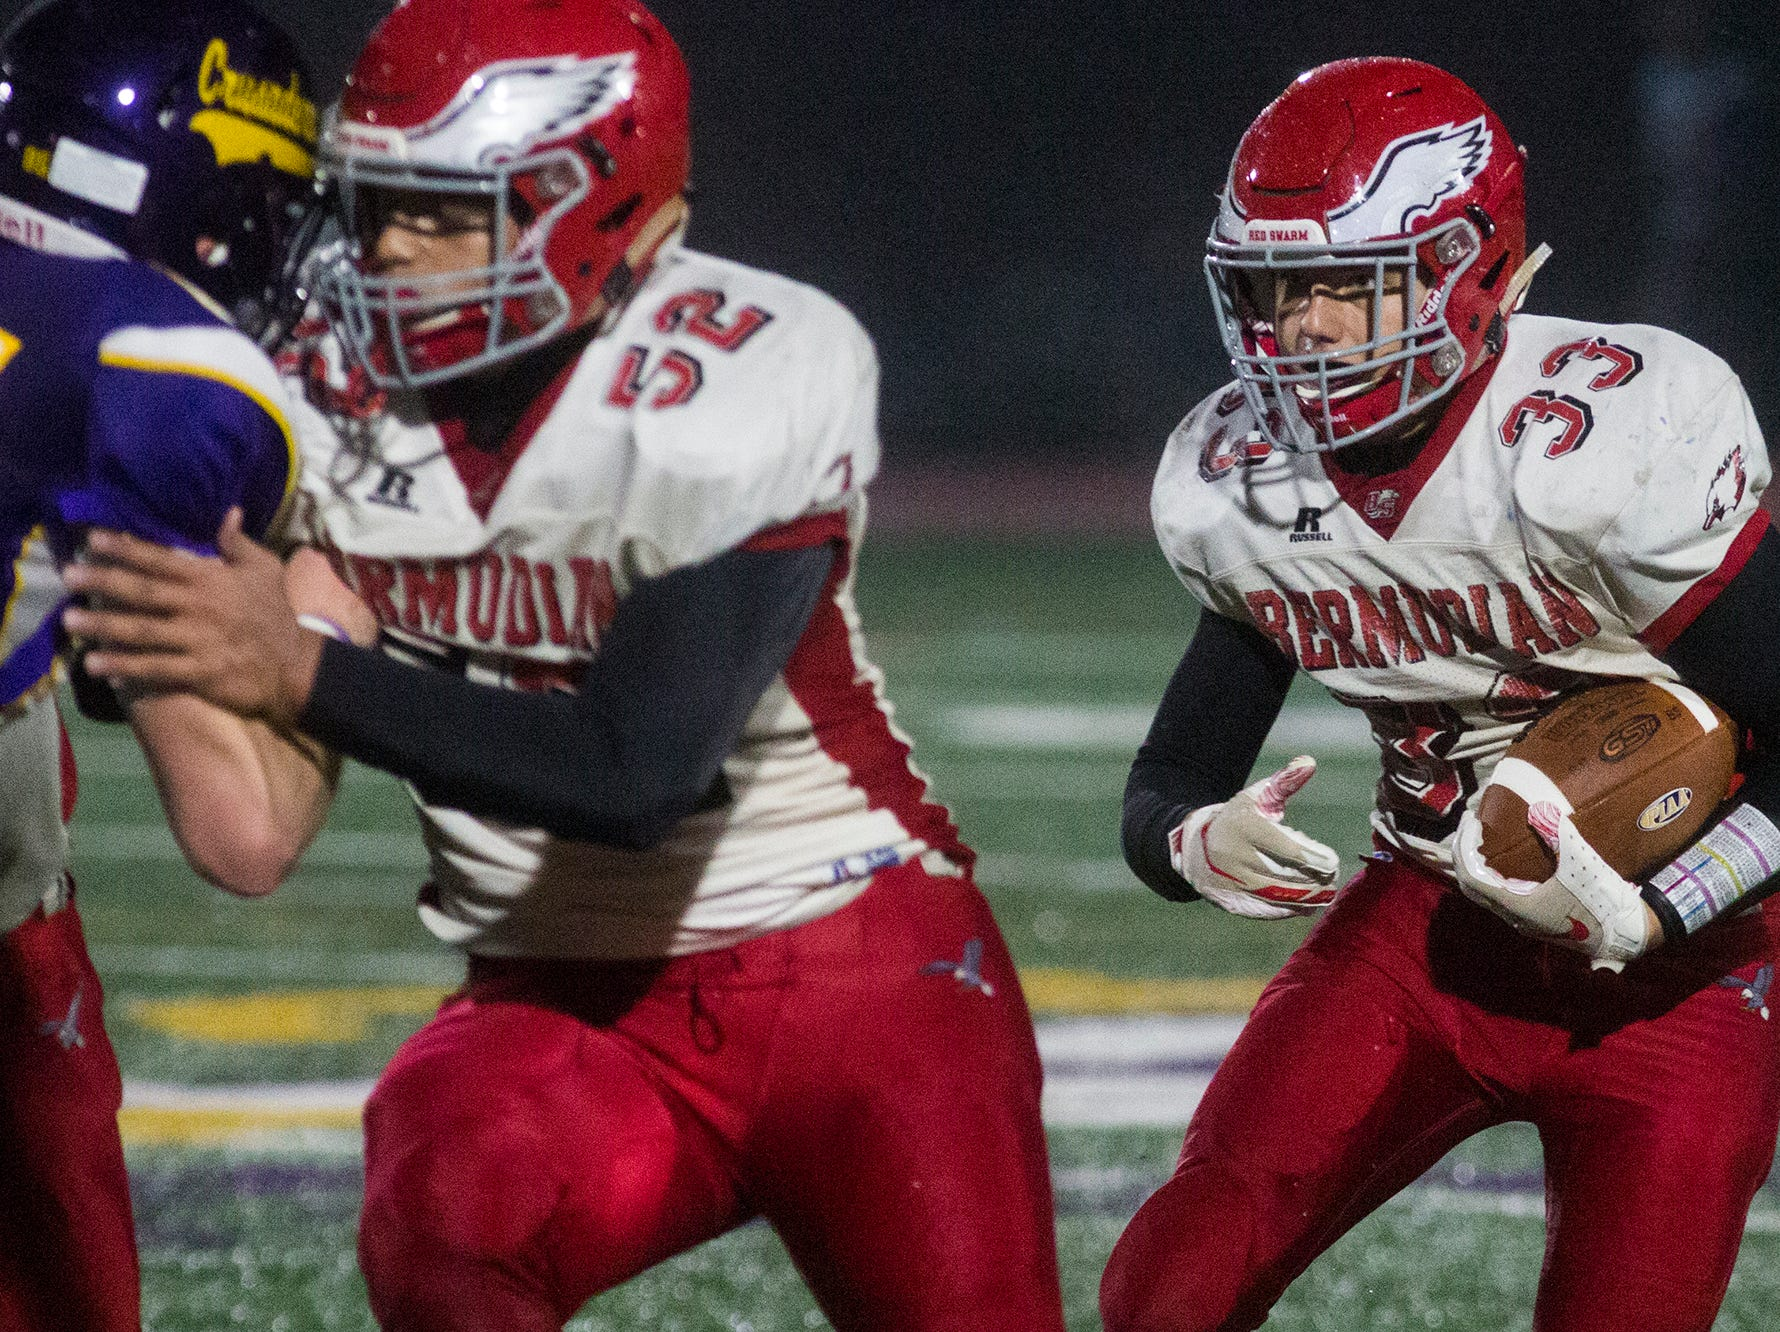 Bermudian Springs' Trace Grim, right, runs with the ball. Bermudian Springs defeats Lancaster Catholic 20-10 in a District 3 Class 3A semifinal football game at Lancaster Catholic's Crusader Stadium, Friday, November 9, 2018.